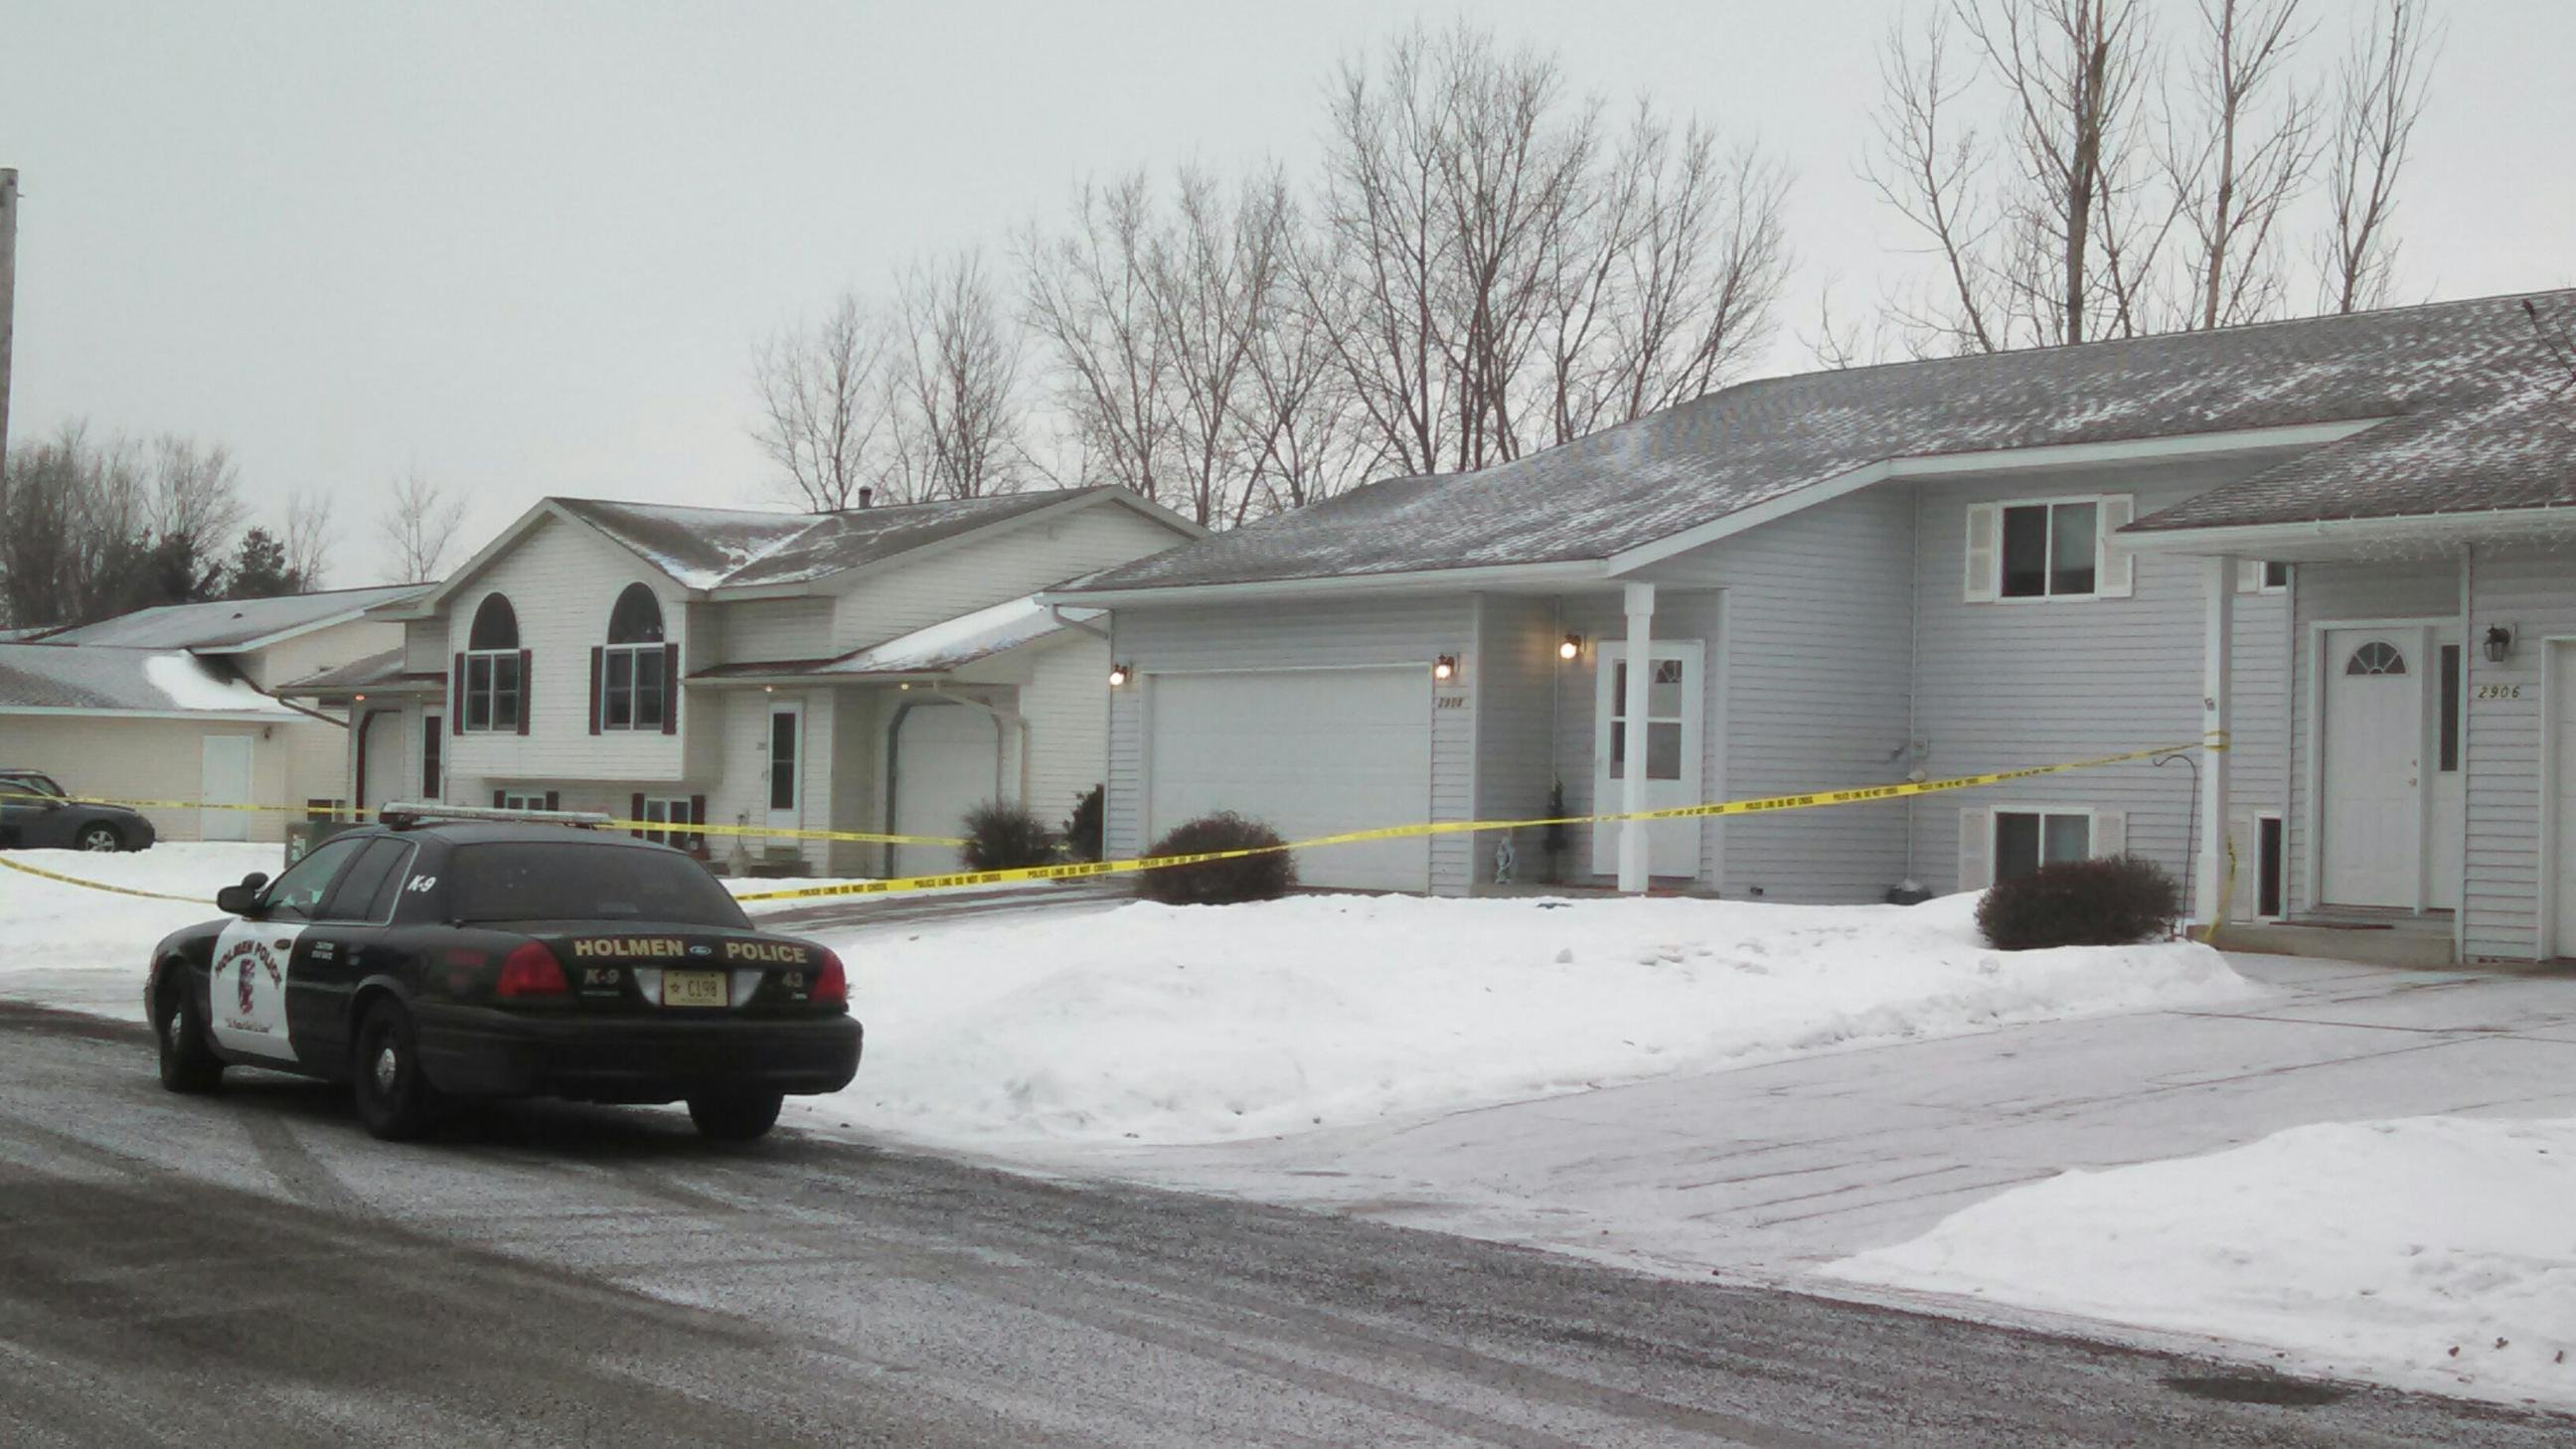 Photo from March 2, 1015 as a Holmen Police car sits outside the home where the homicide took place.